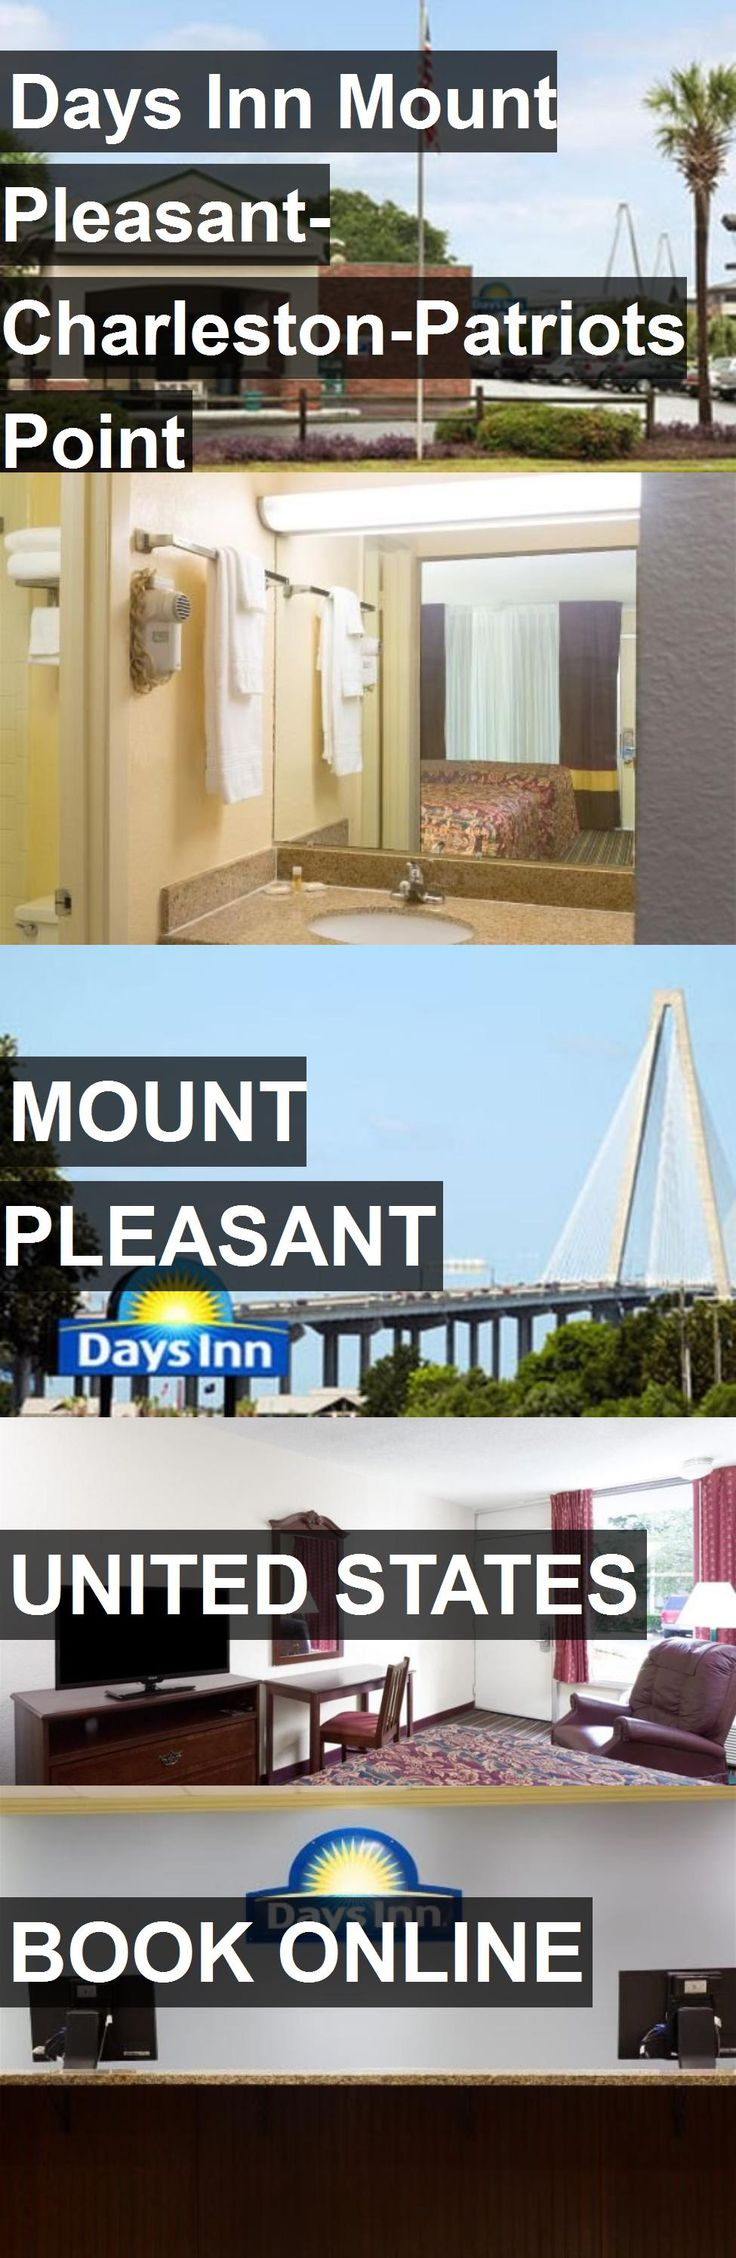 Hotel Days Inn Mount Pleasant-Charleston-Patriots Point in Mount Pleasant, United States. For more information, photos, reviews and best prices please follow the link. #UnitedStates #MountPleasant #travel #vacation #hotel